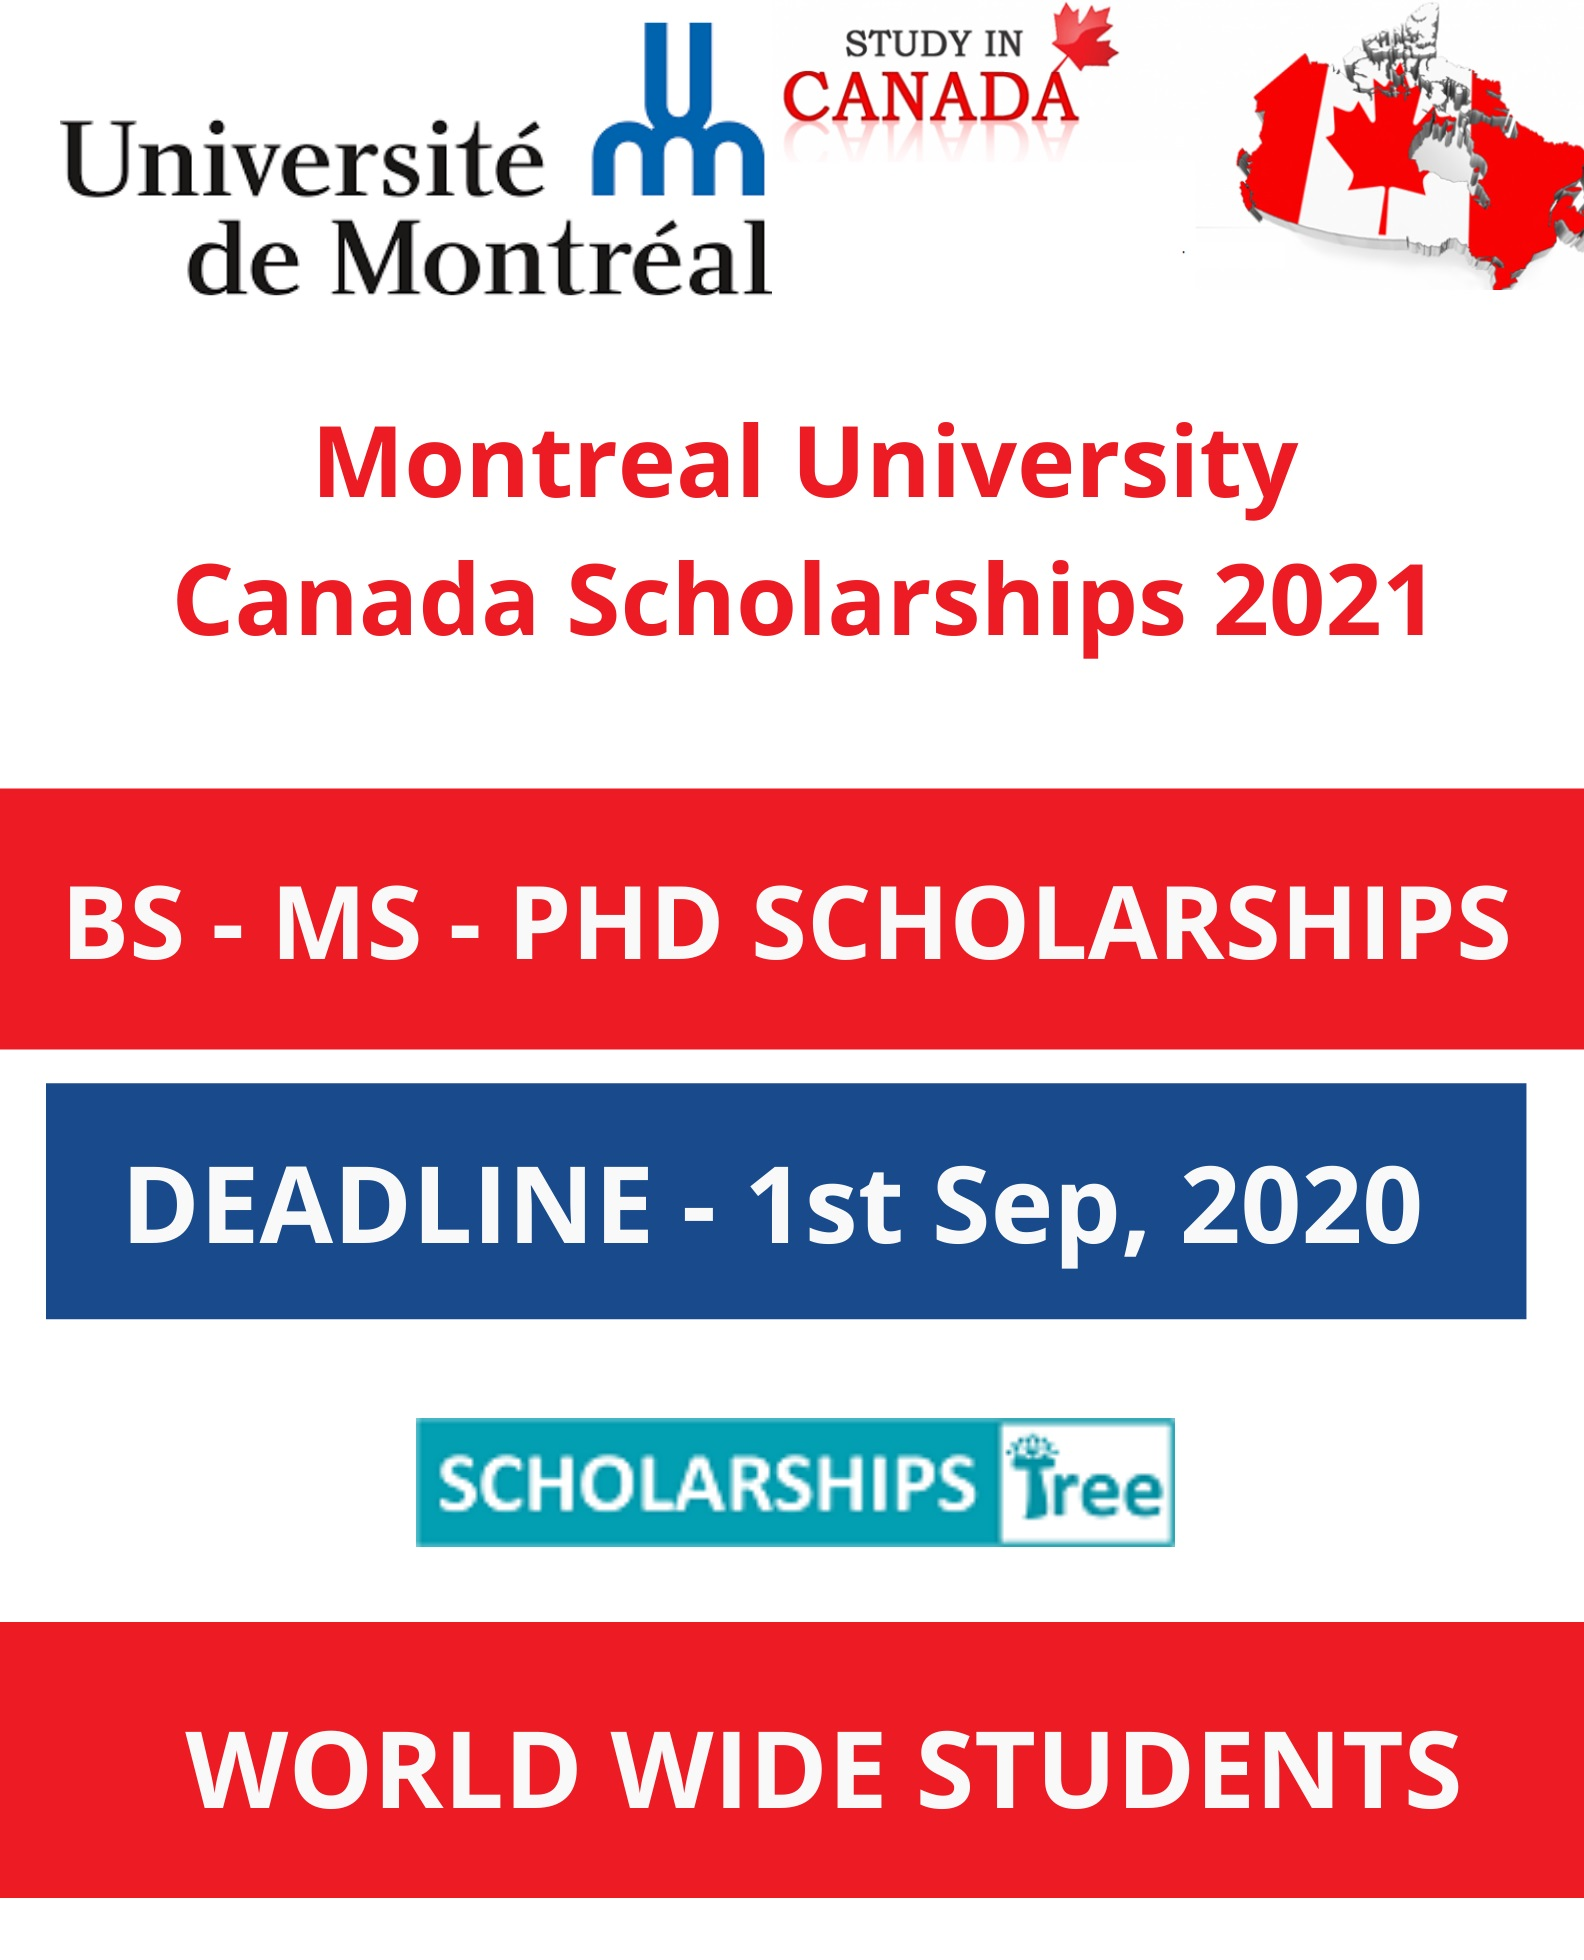 Montreal University Canada Scholarships 2021